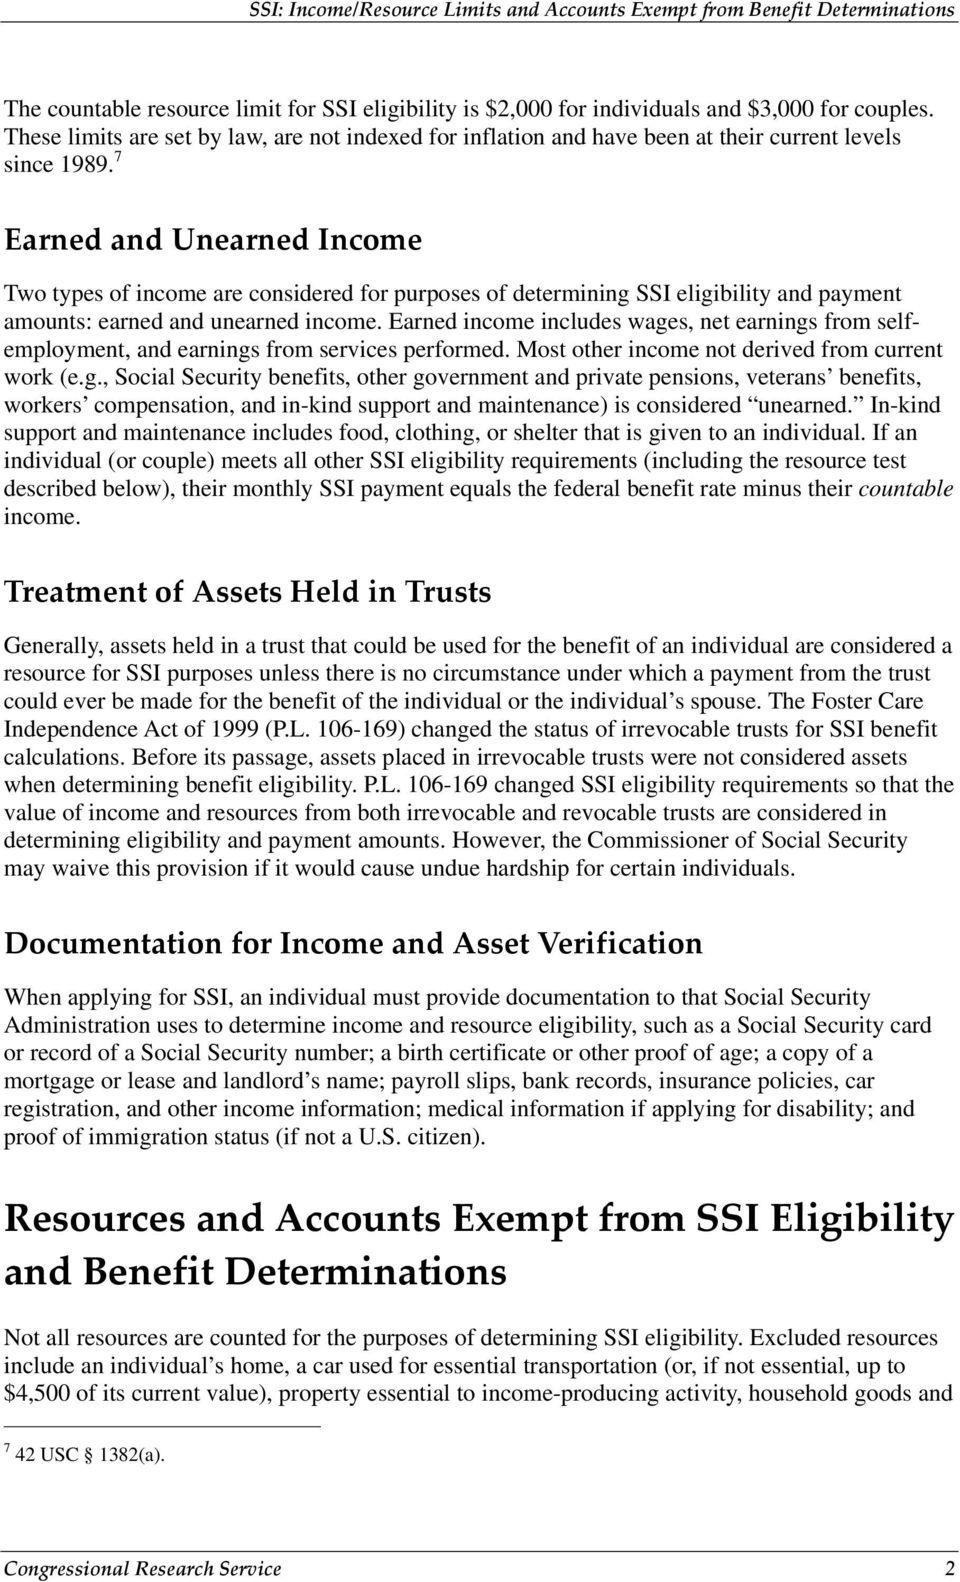 7 Earned and Unearned Income Two types of income are considered for purposes of determining SSI eligibility and payment amounts: earned and unearned income.